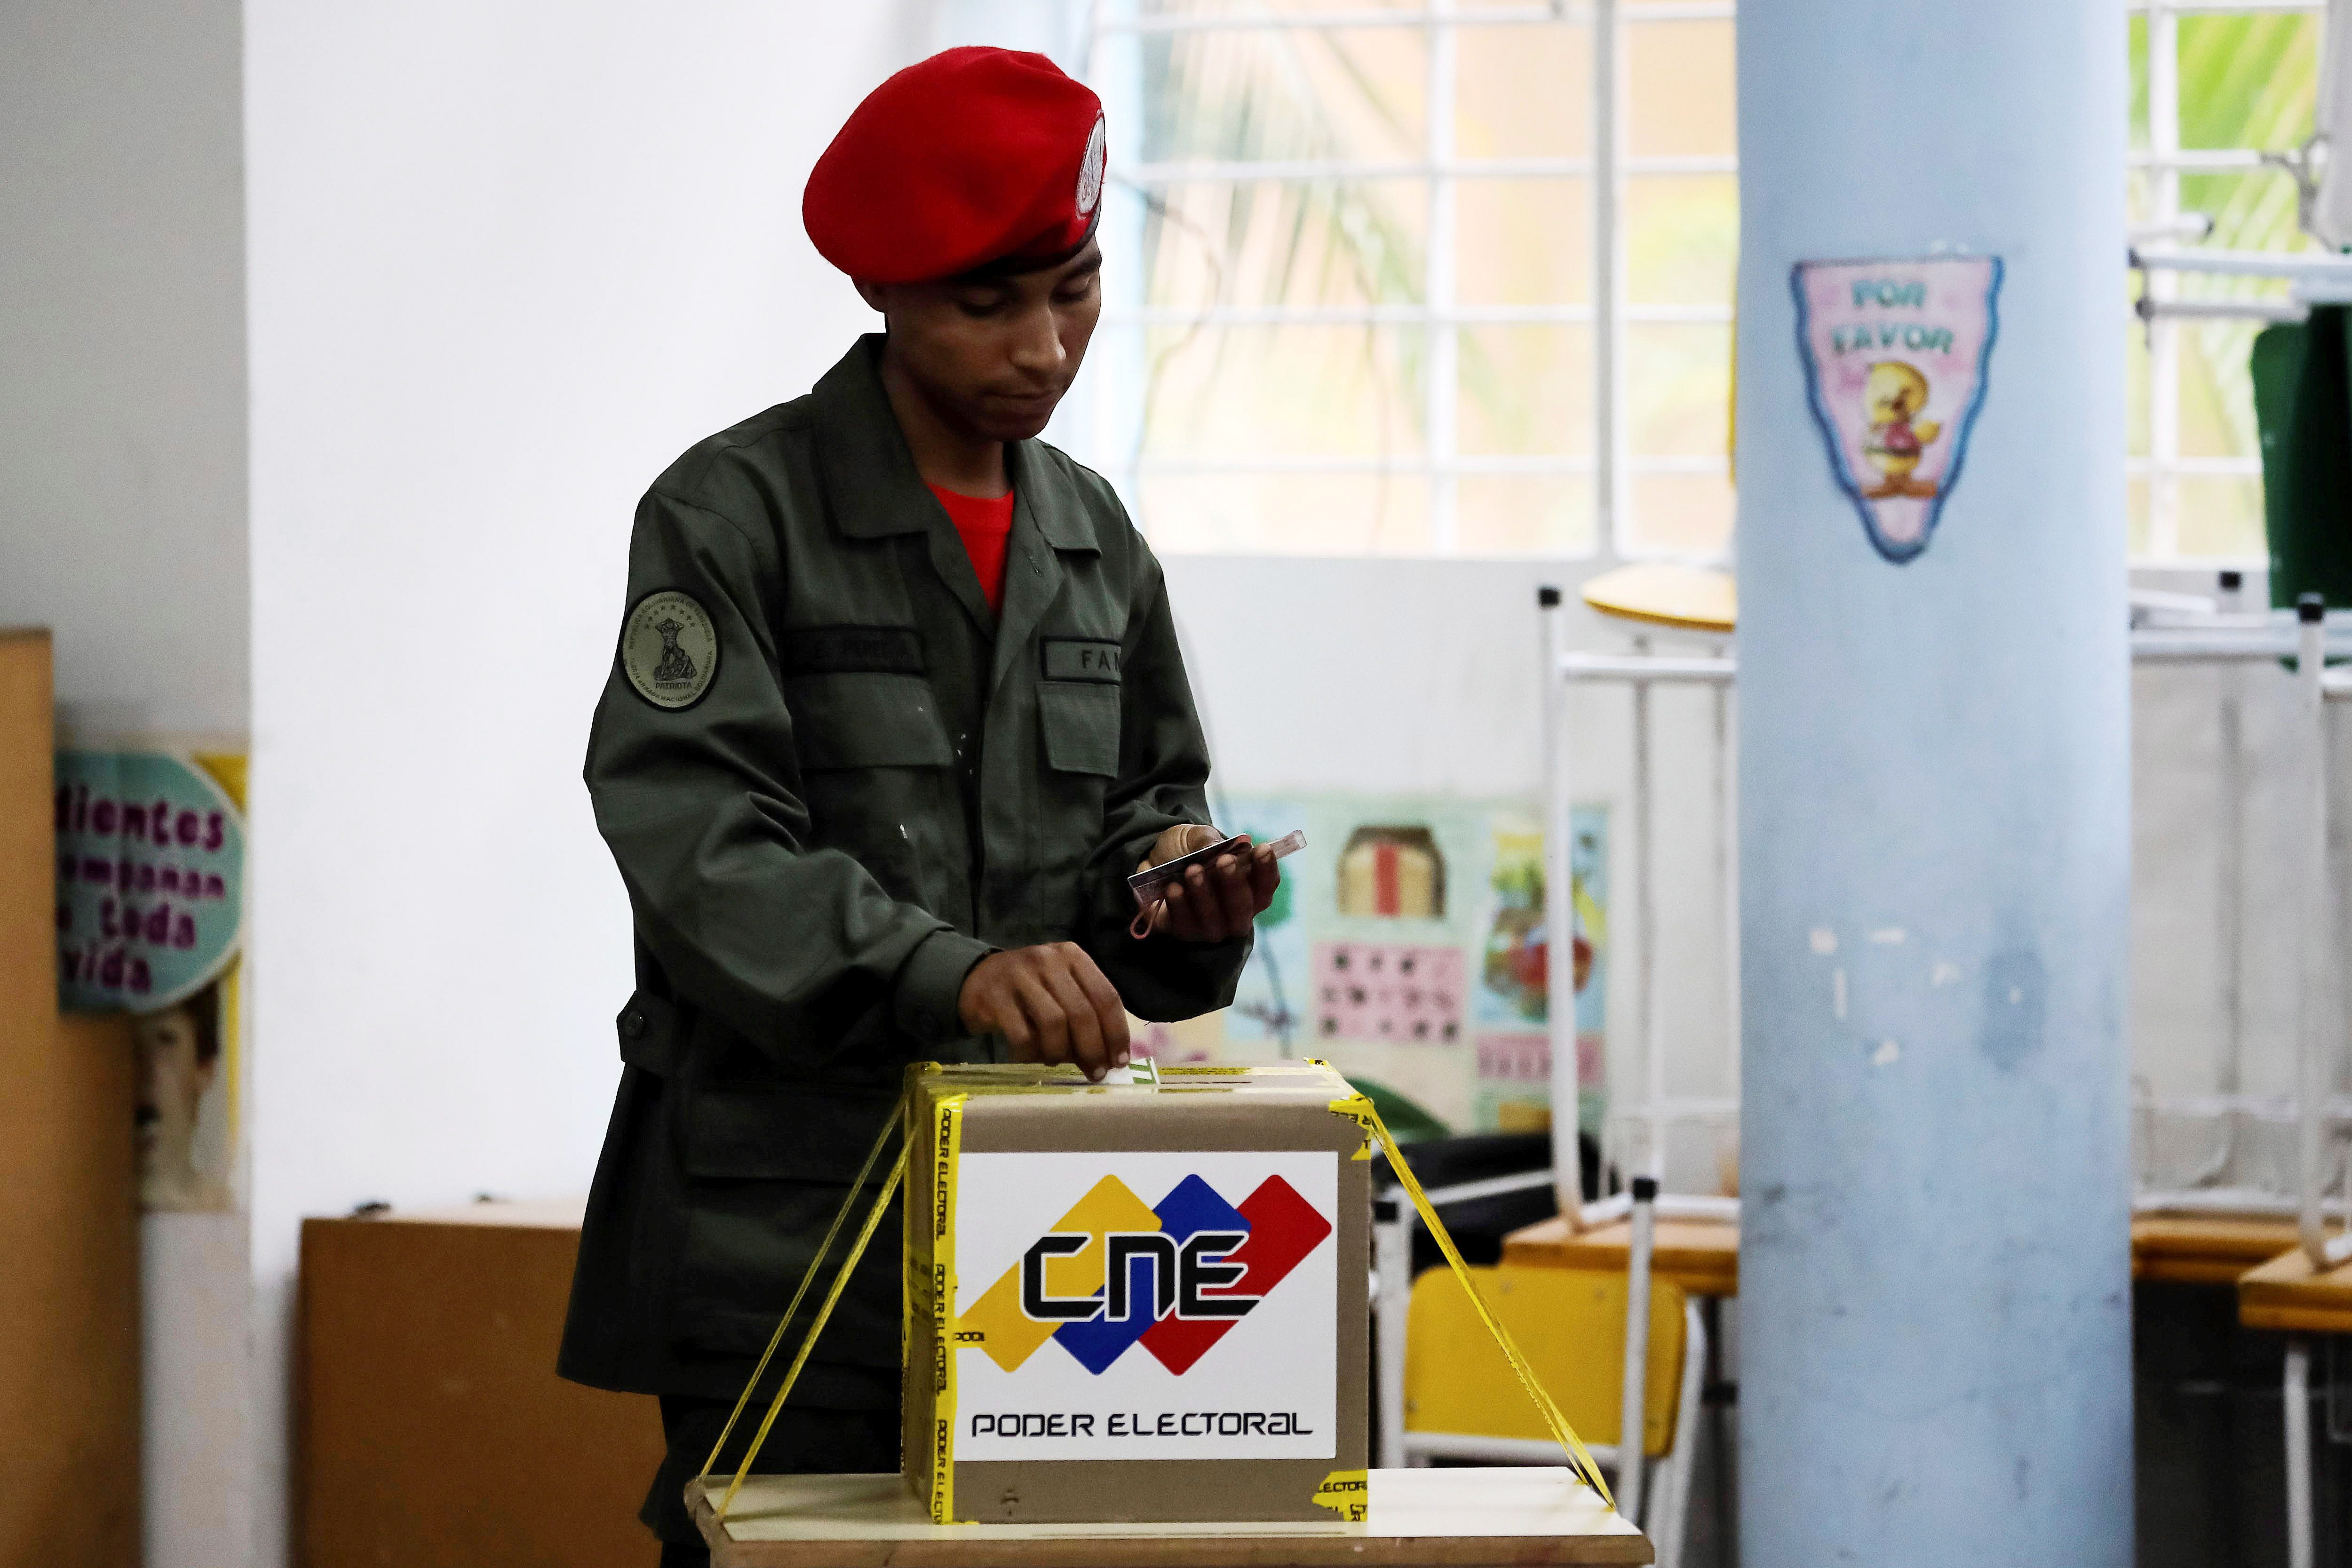 A soldier casts his vote at a polling station during the Presidential elections in Caracas, Venezuela on May 20, 2018. Venezuela holds presidential elections today as current president Nicolas Maduro is seeking a second six-year term of office.